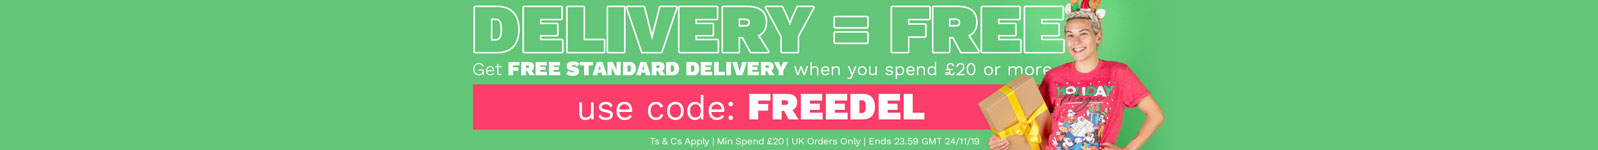 19-11 - Free Delivery